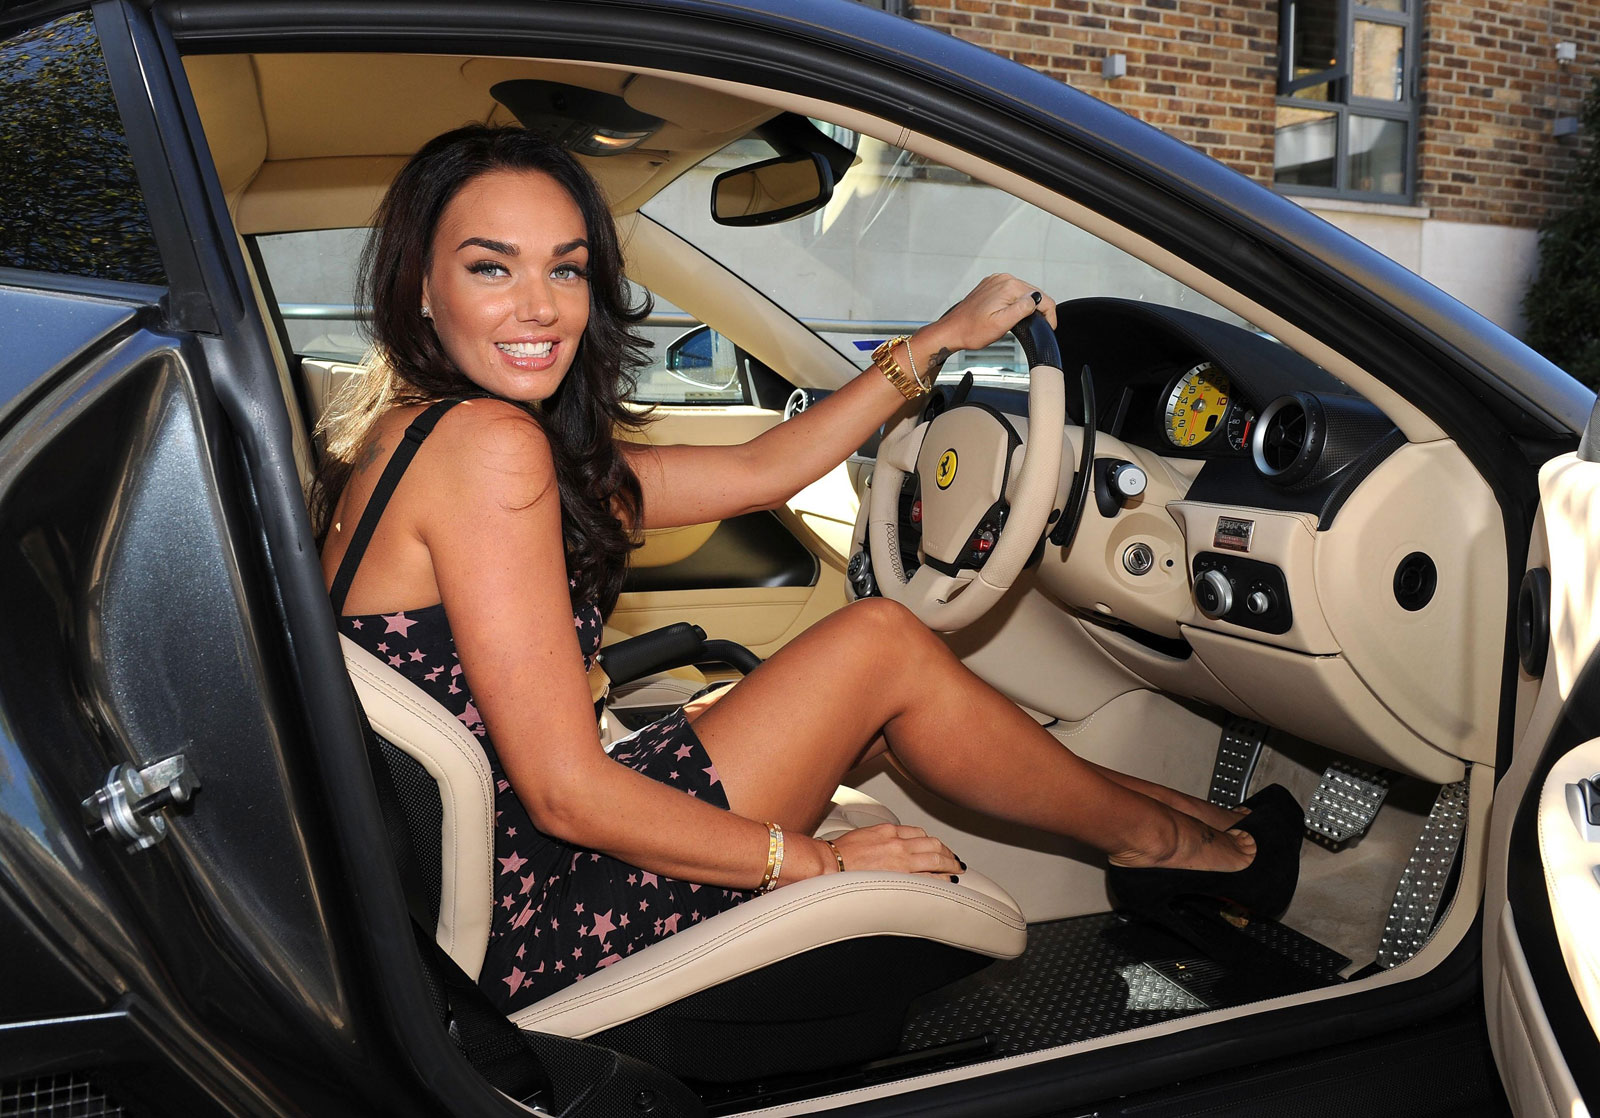 http://3.bp.blogspot.com/-7rqAO6vqneU/Tsge13kQK8I/AAAAAAAAA5s/49_p-1G6KPc/s1600/Tamara-Ecclestone-Poses-with-Ferrari-599-for-Billion-Girl-Show-1.jpg